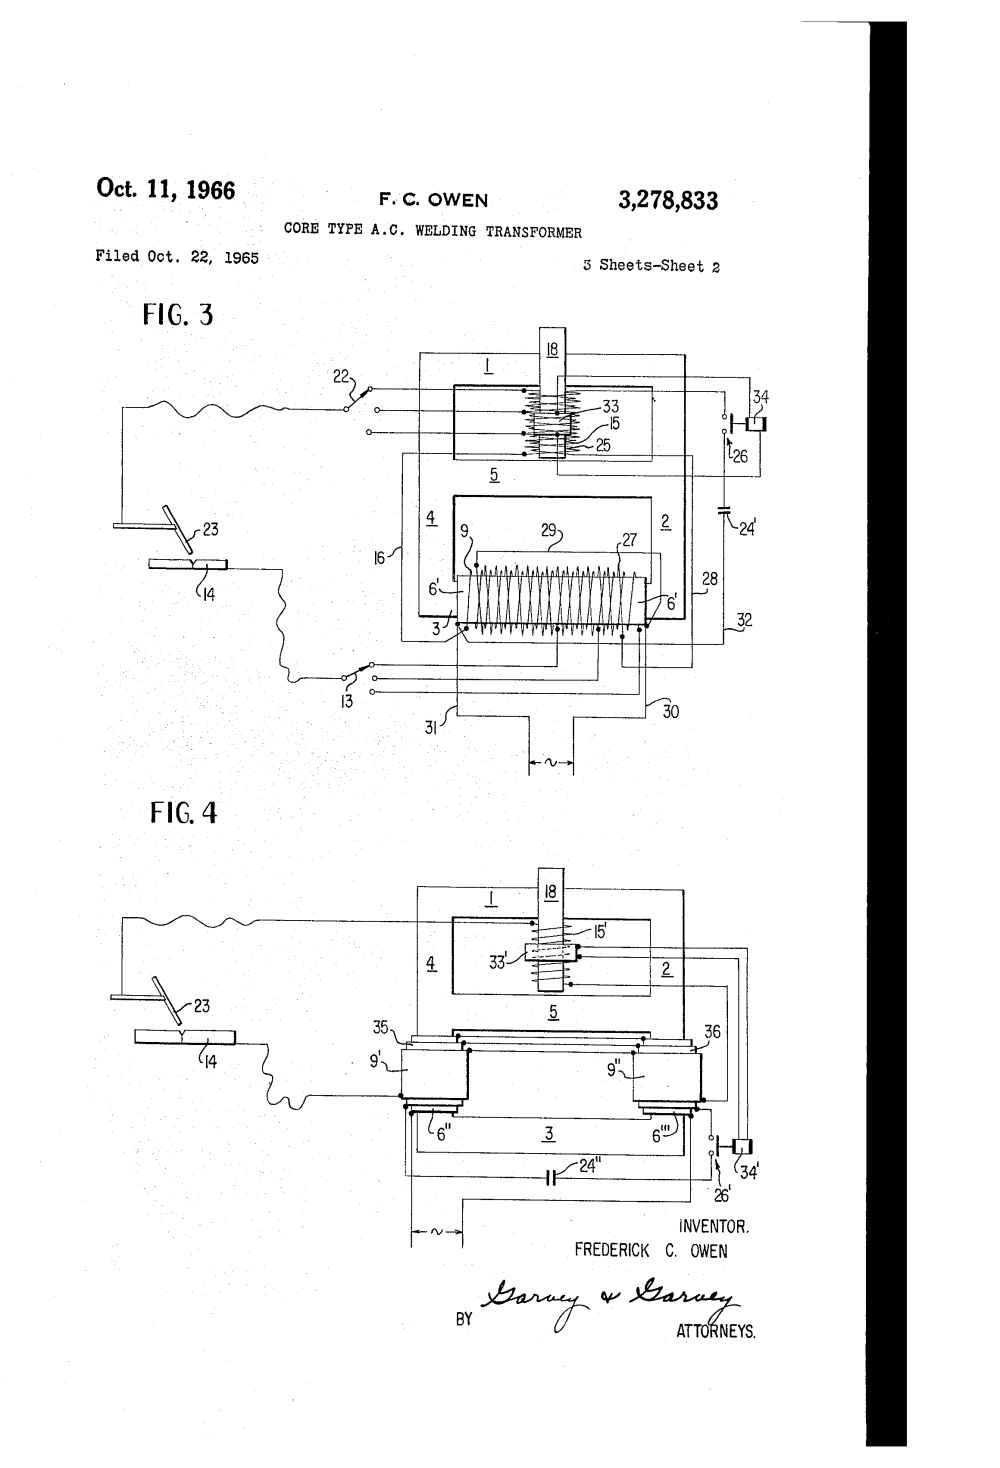 medium resolution of 3 phase welding transformer diagram wiring library diagram experts circuit diagram mig welding 3 phase welding